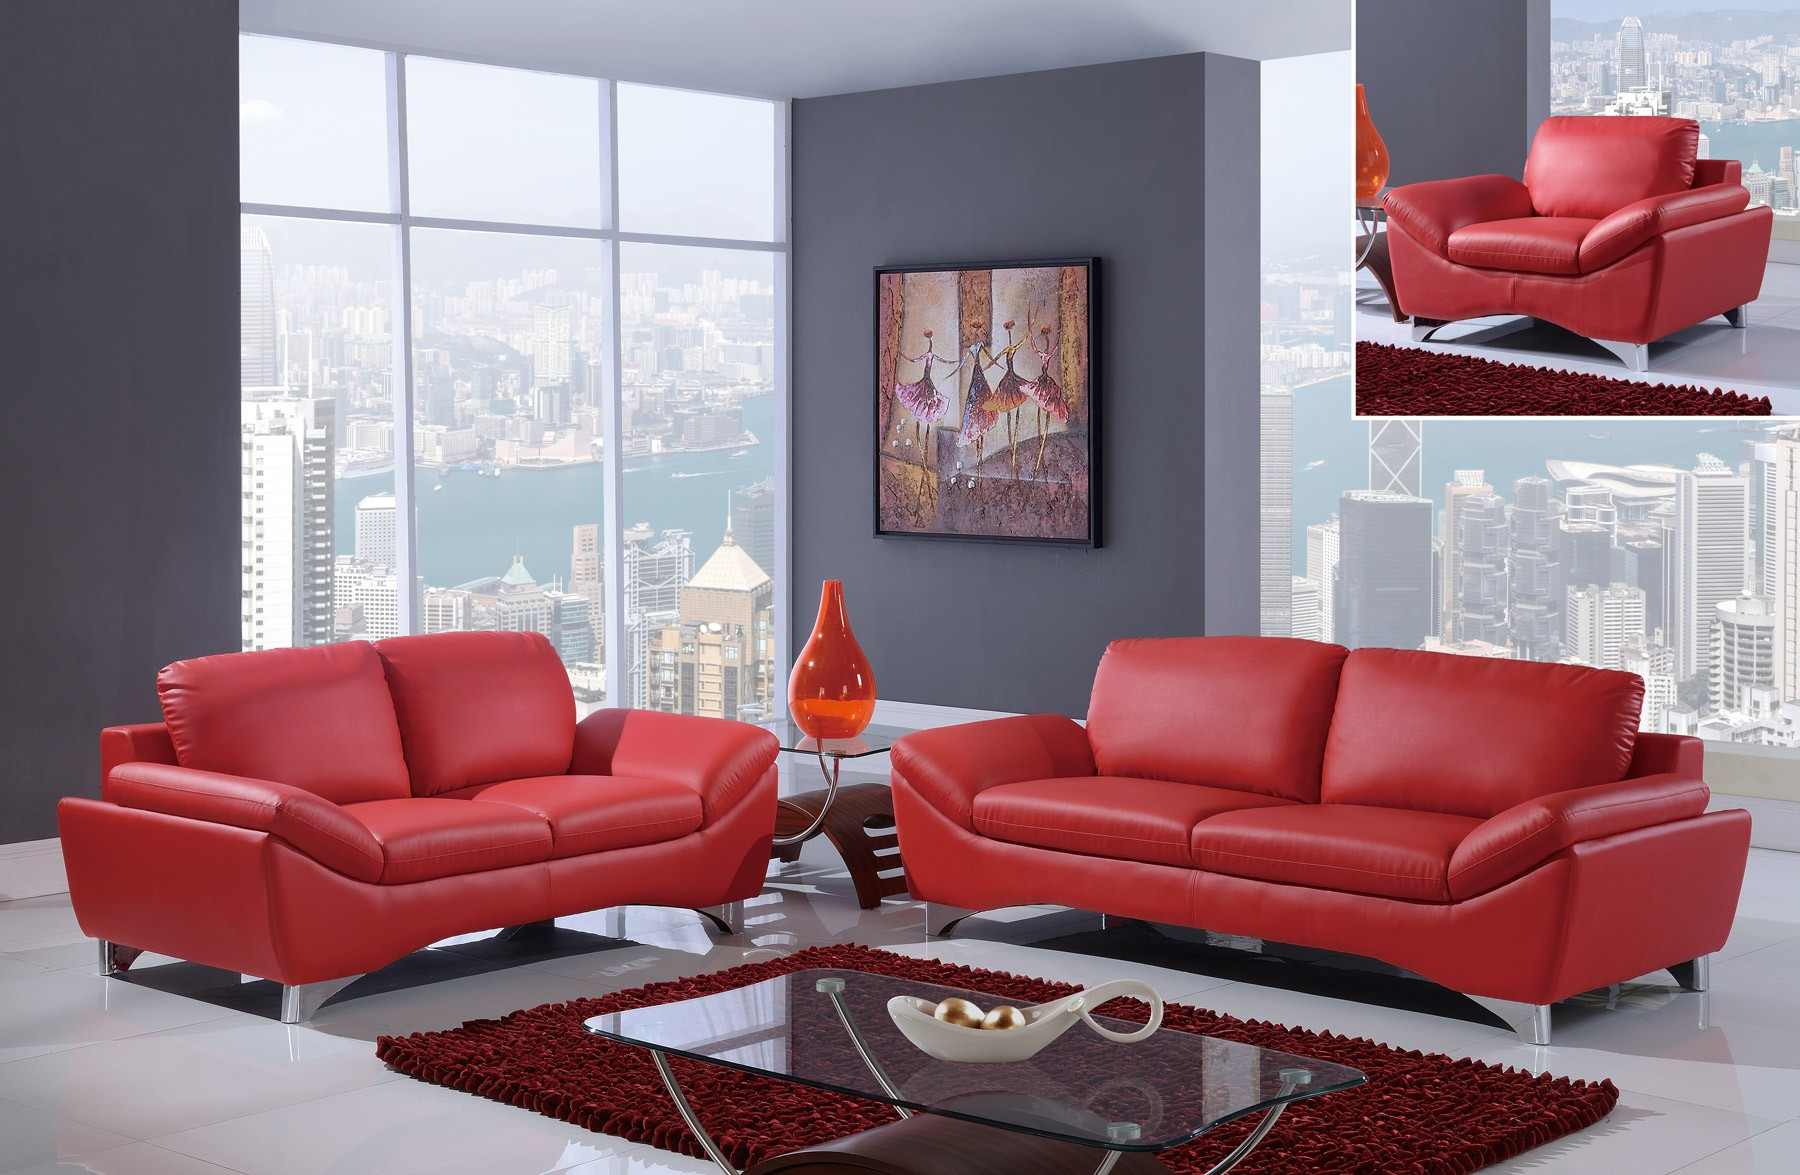 marvelous red leather living room furniture | UR7140 Global Furniture Modern Red Leather Living Room Set